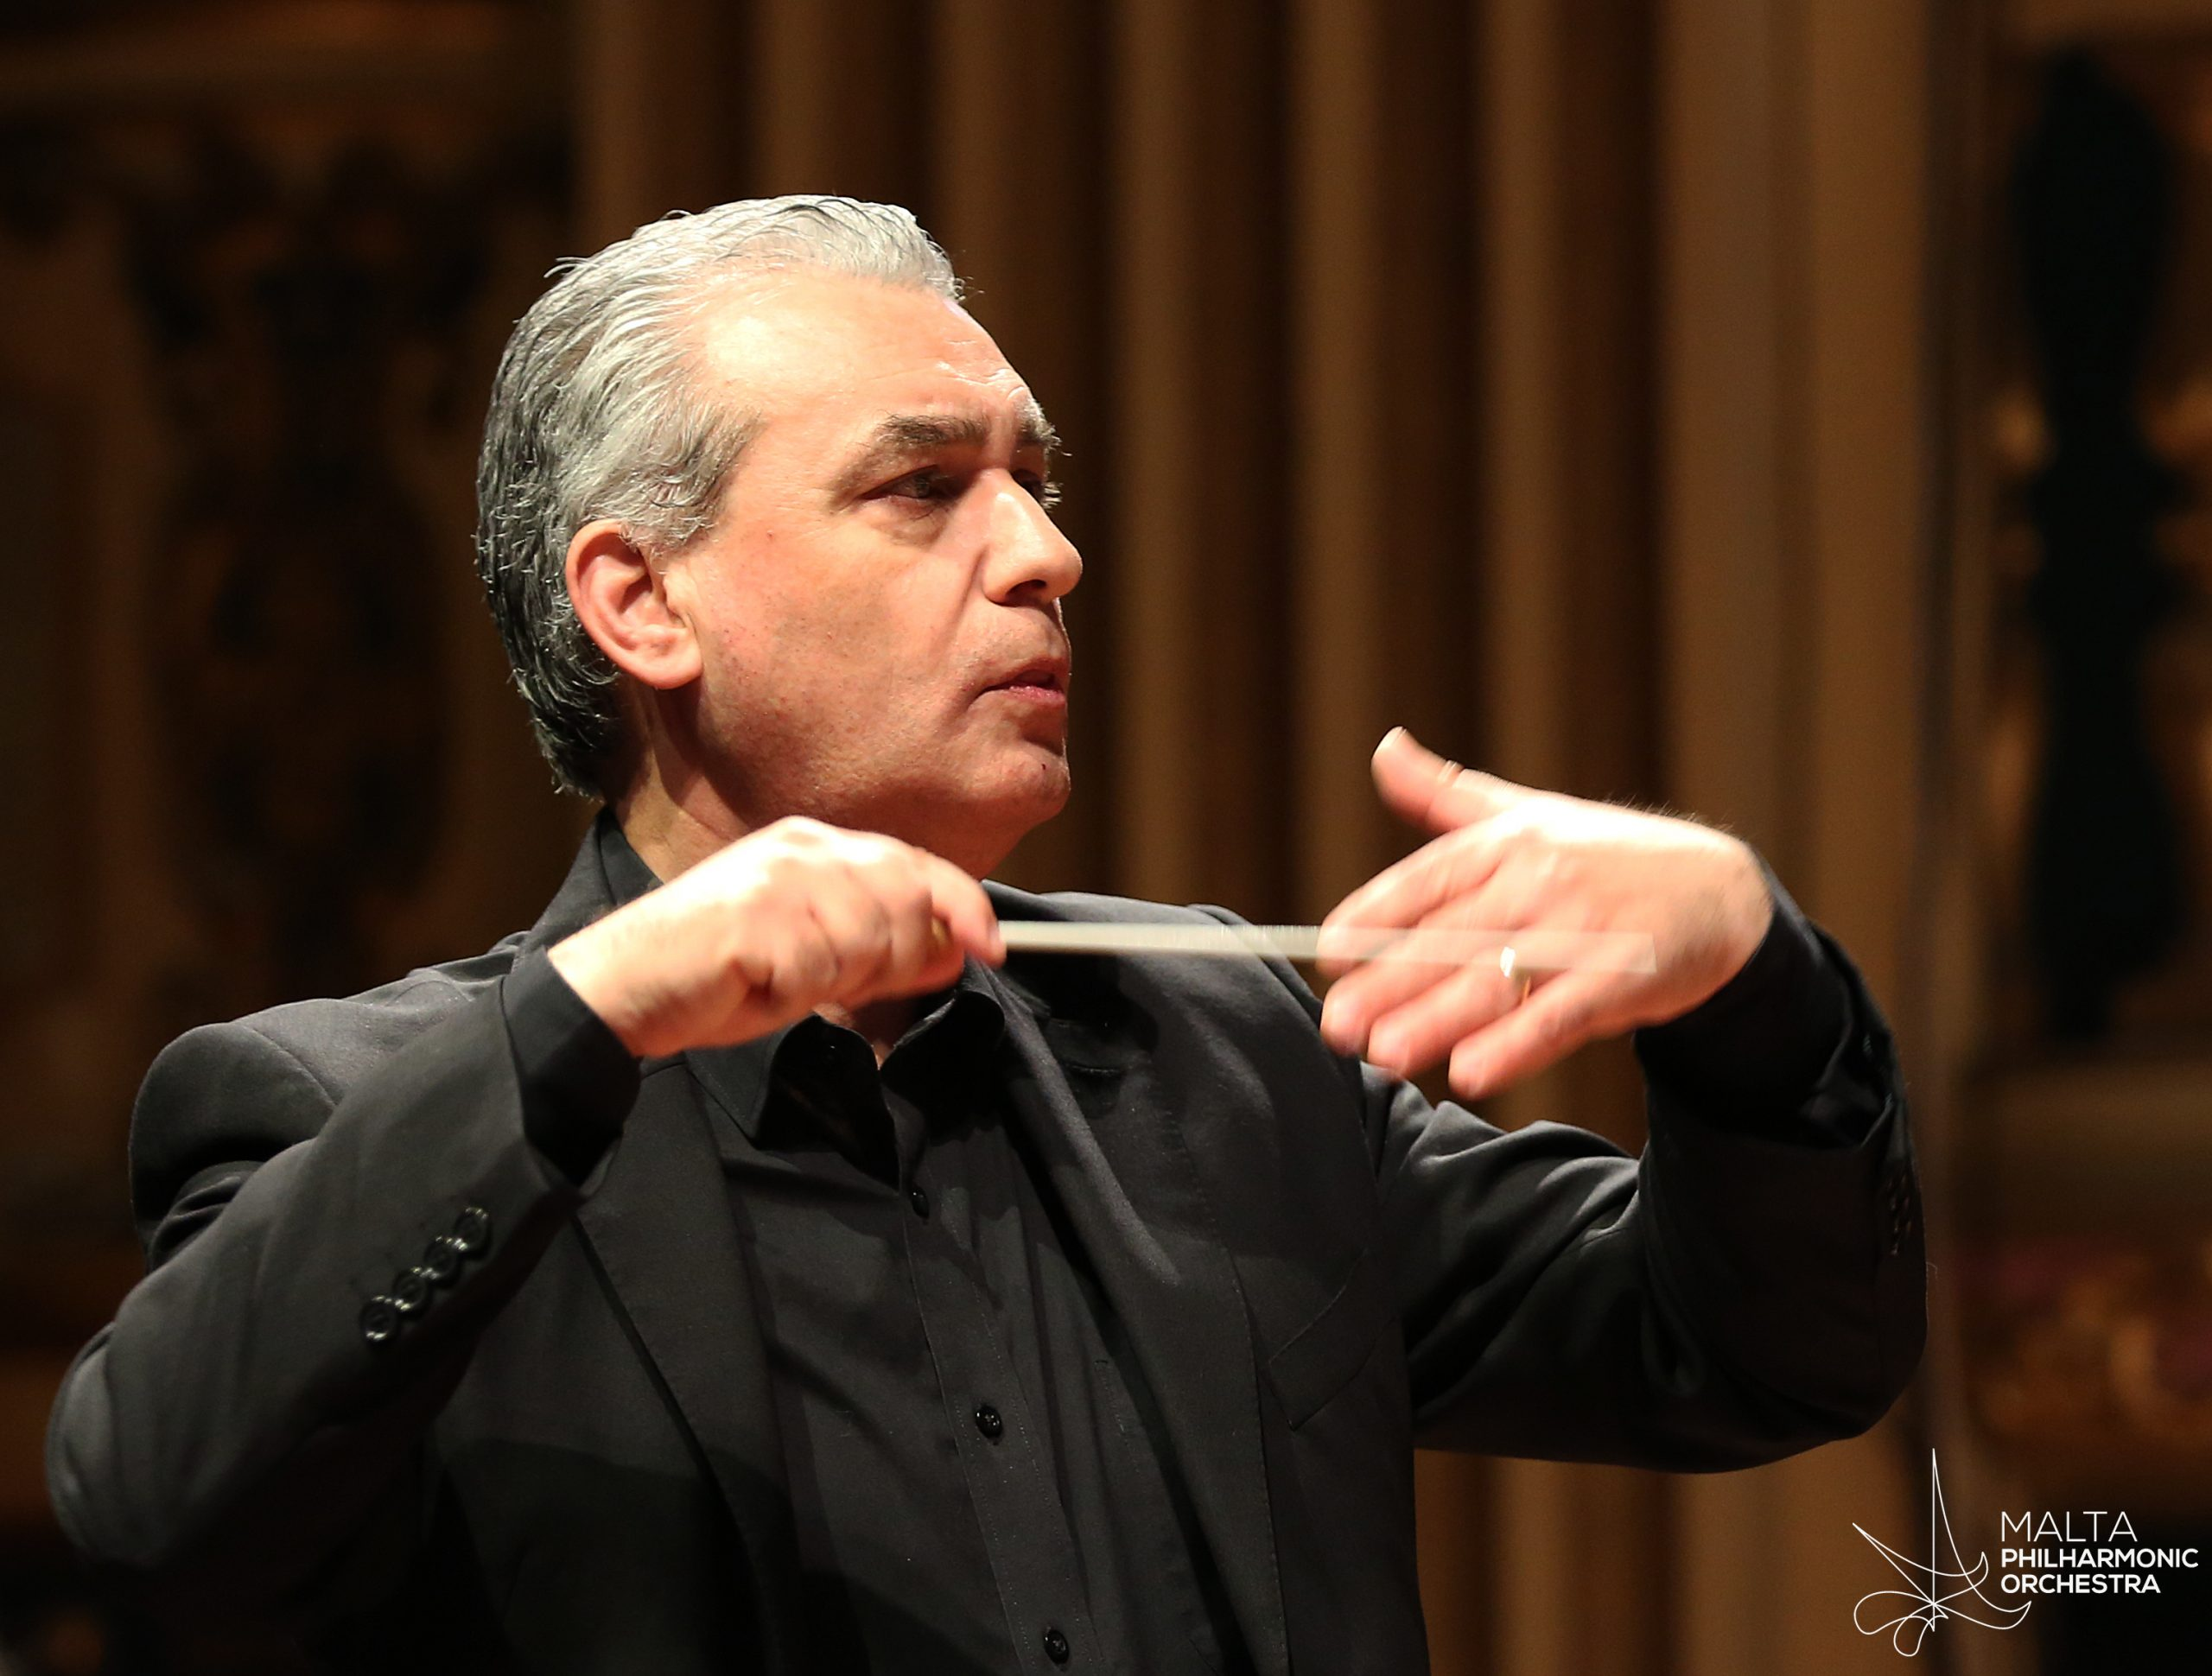 Conductor Michael Laus